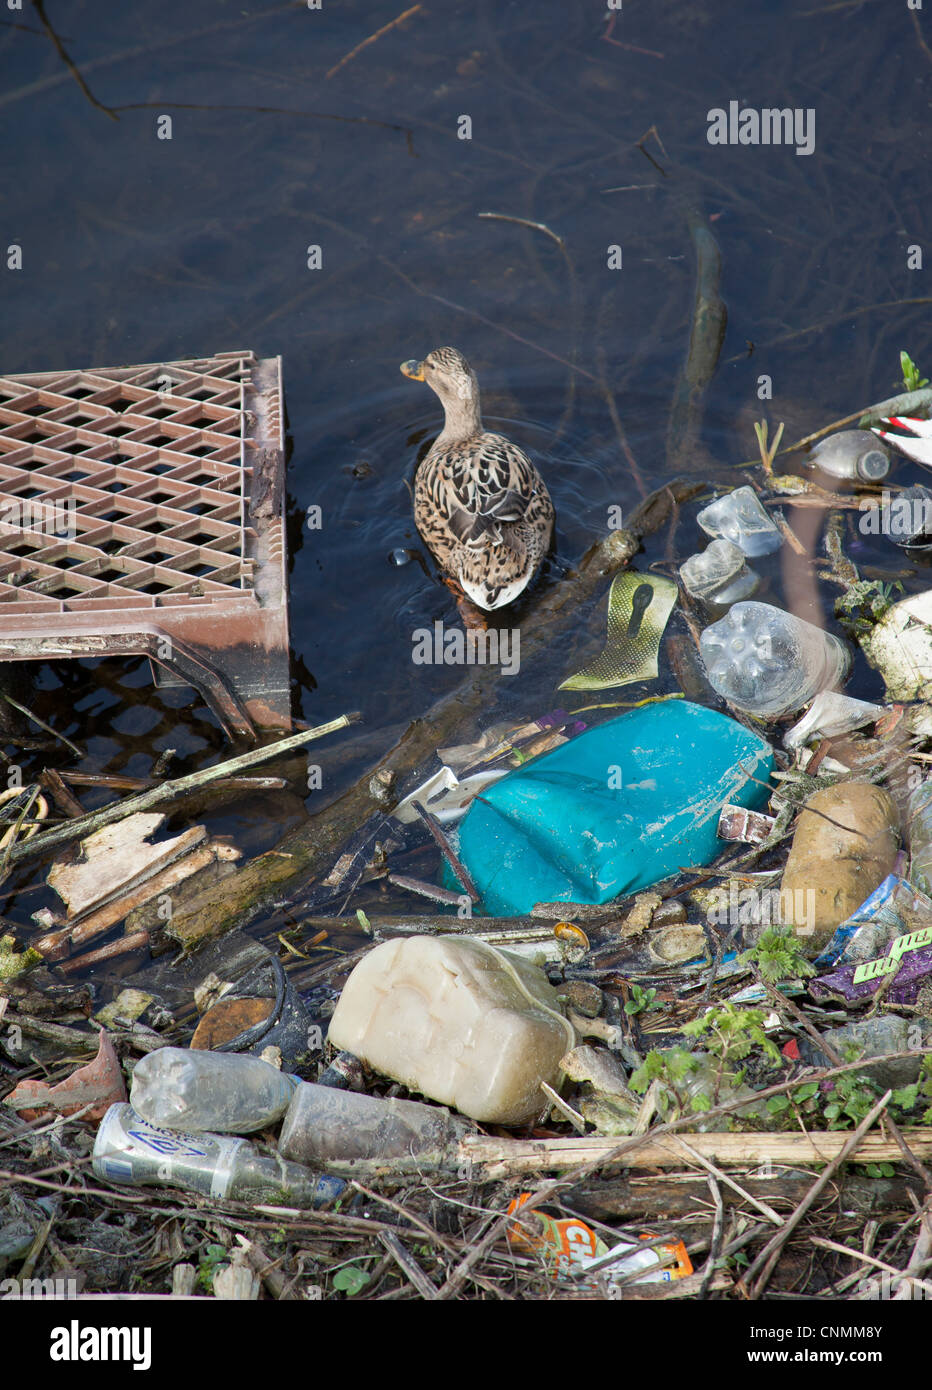 Mallard swimming through river pollution on the River Trent Nottingham. Plastic bottle pollution in a river. Stock Photo